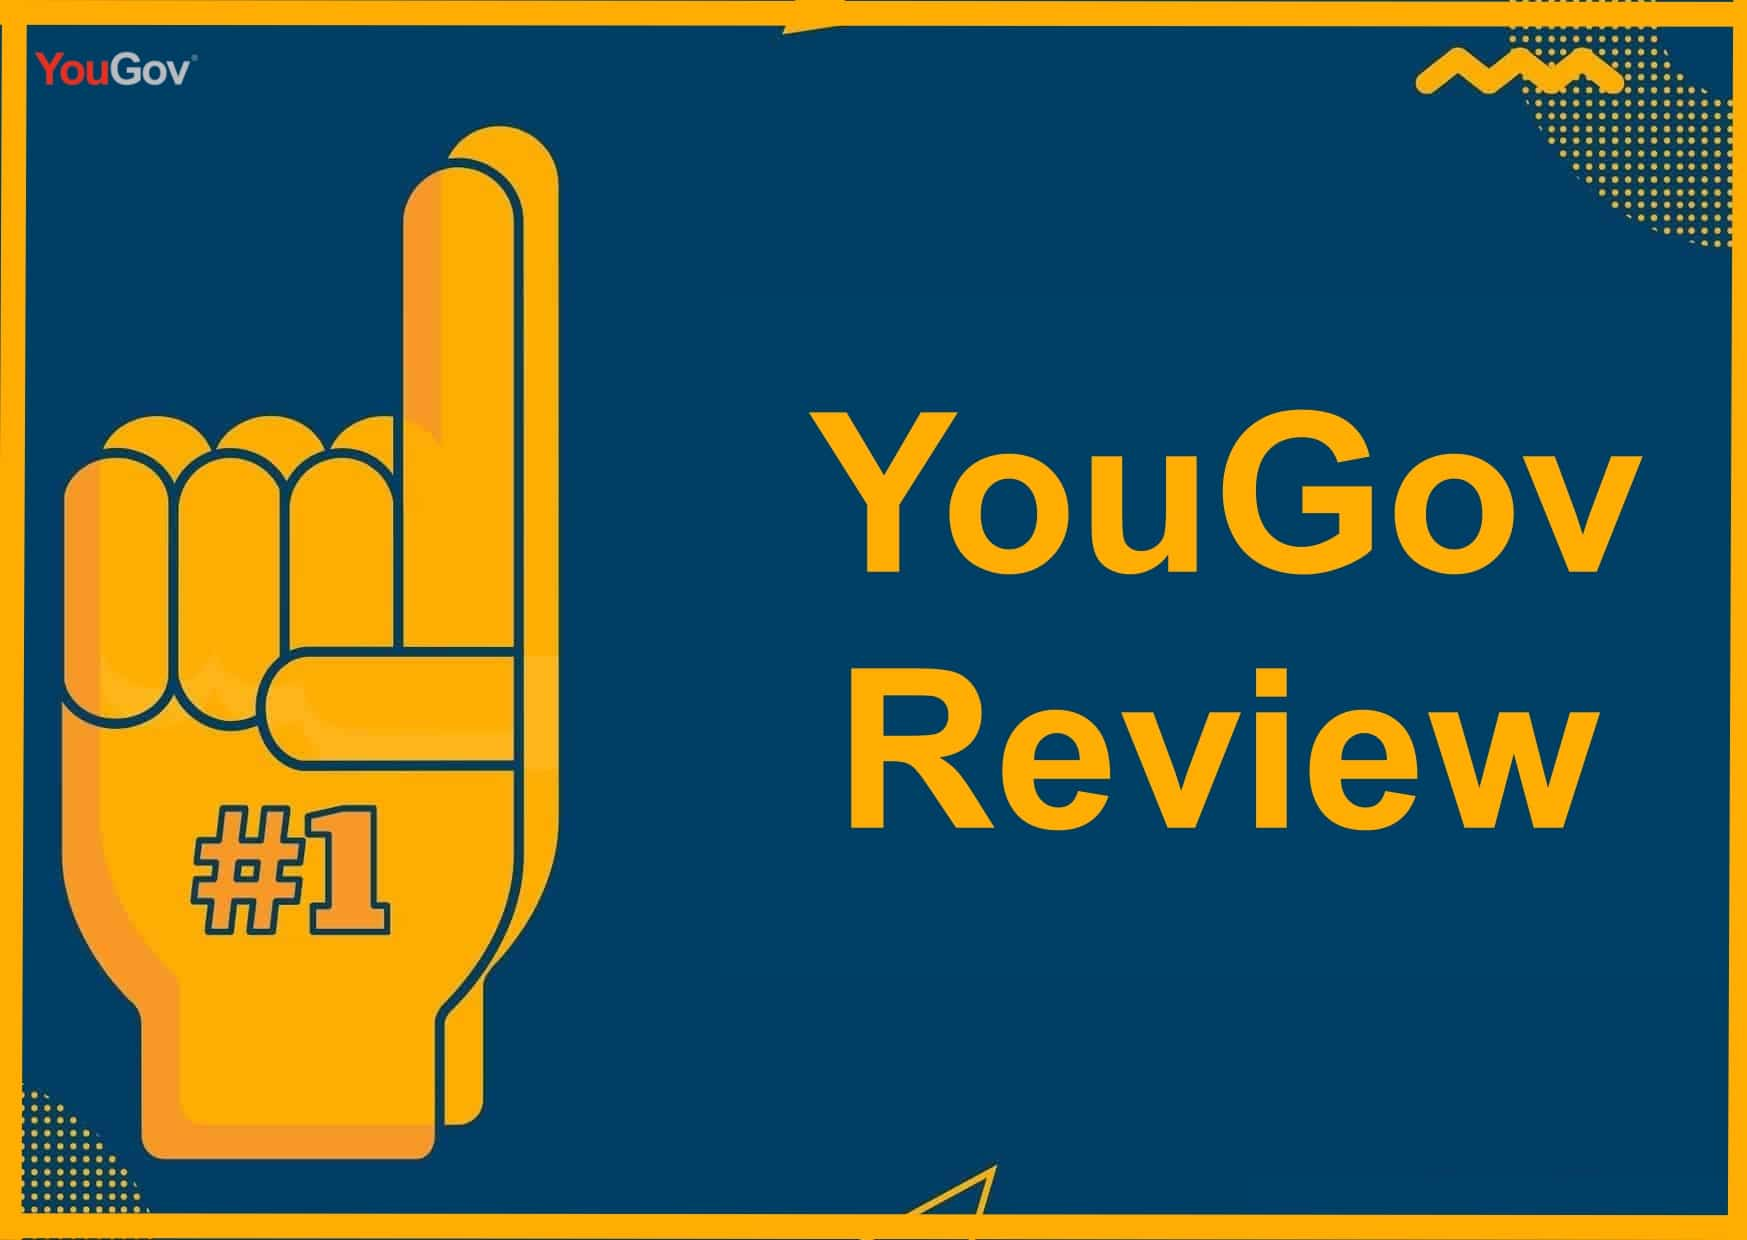 YouGov Review